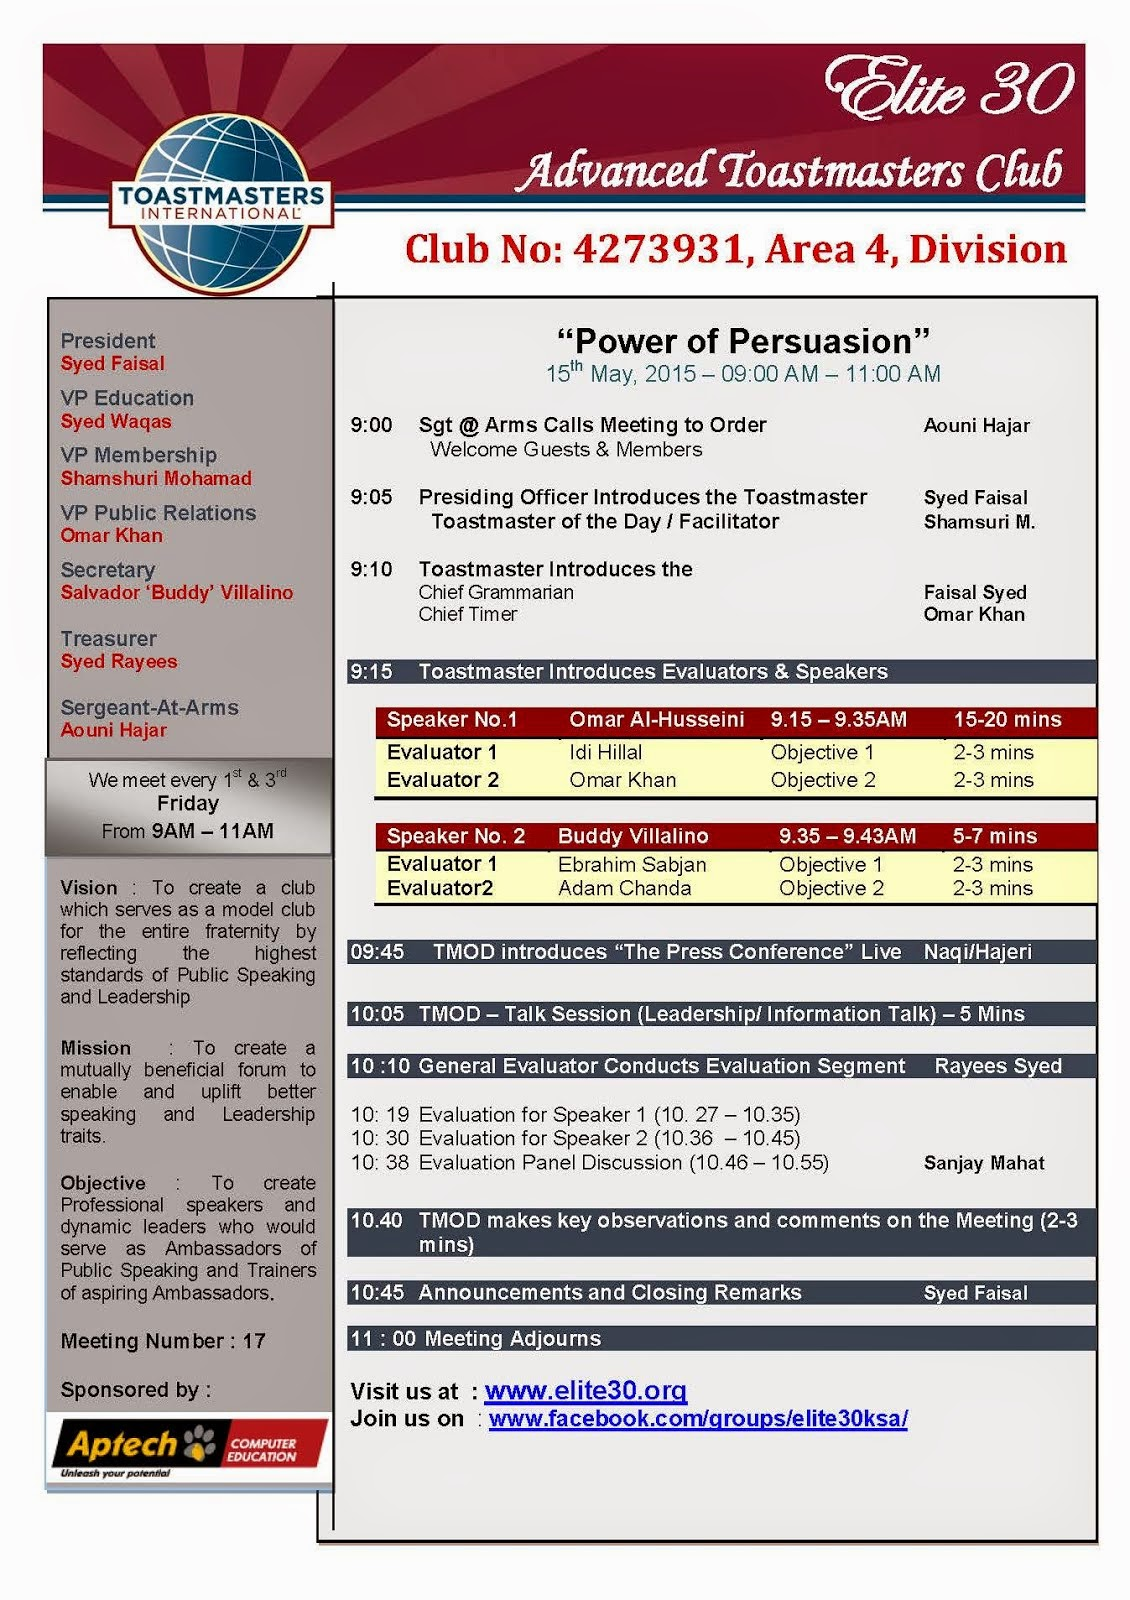 welcome to elite 30 division b district 79 official website meeting agenda for 15th 2015 power of persuasion